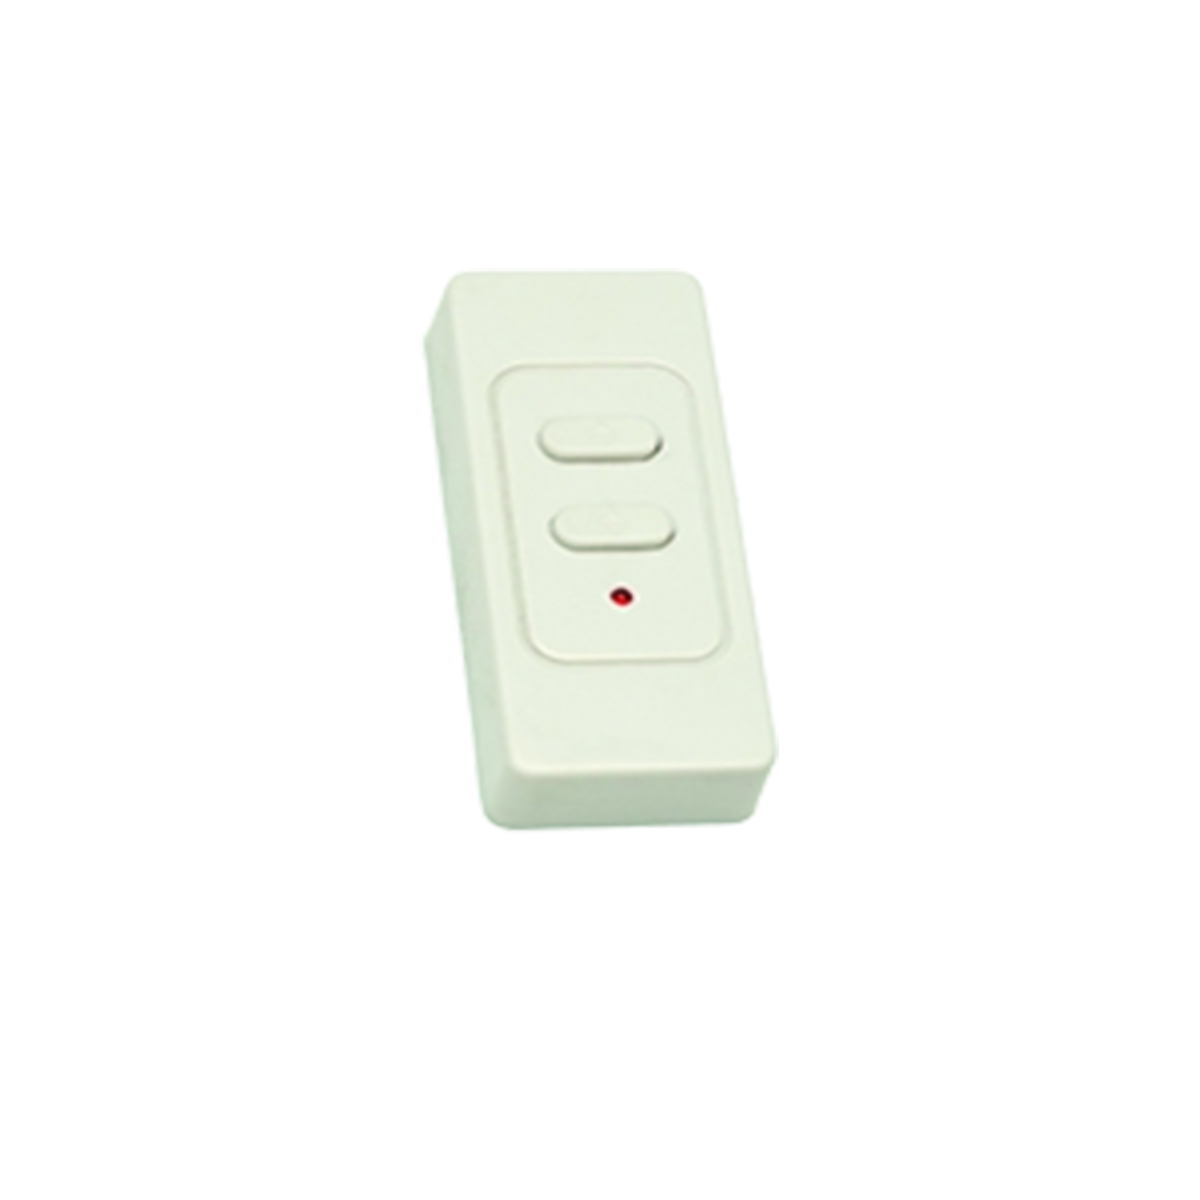 Araccess Wireless Wall mounted Button